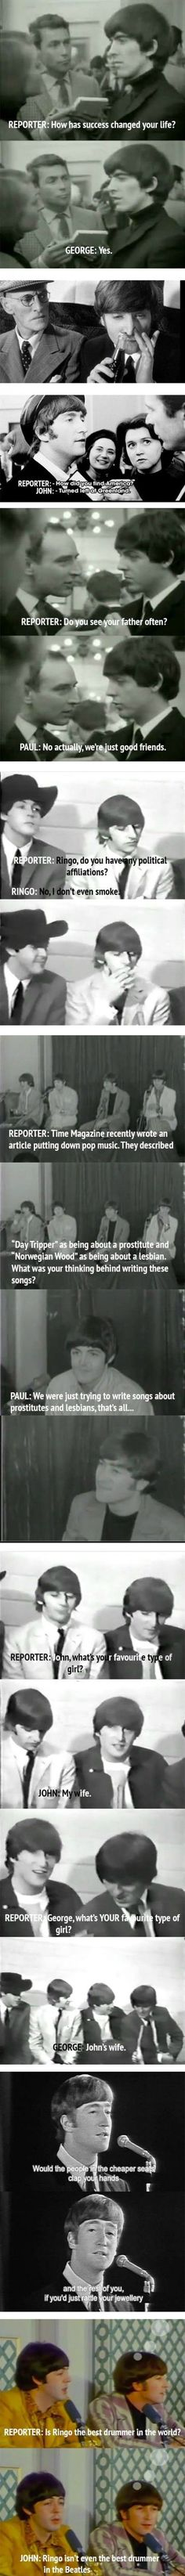 so apparently The Beatles were HILARIOUS